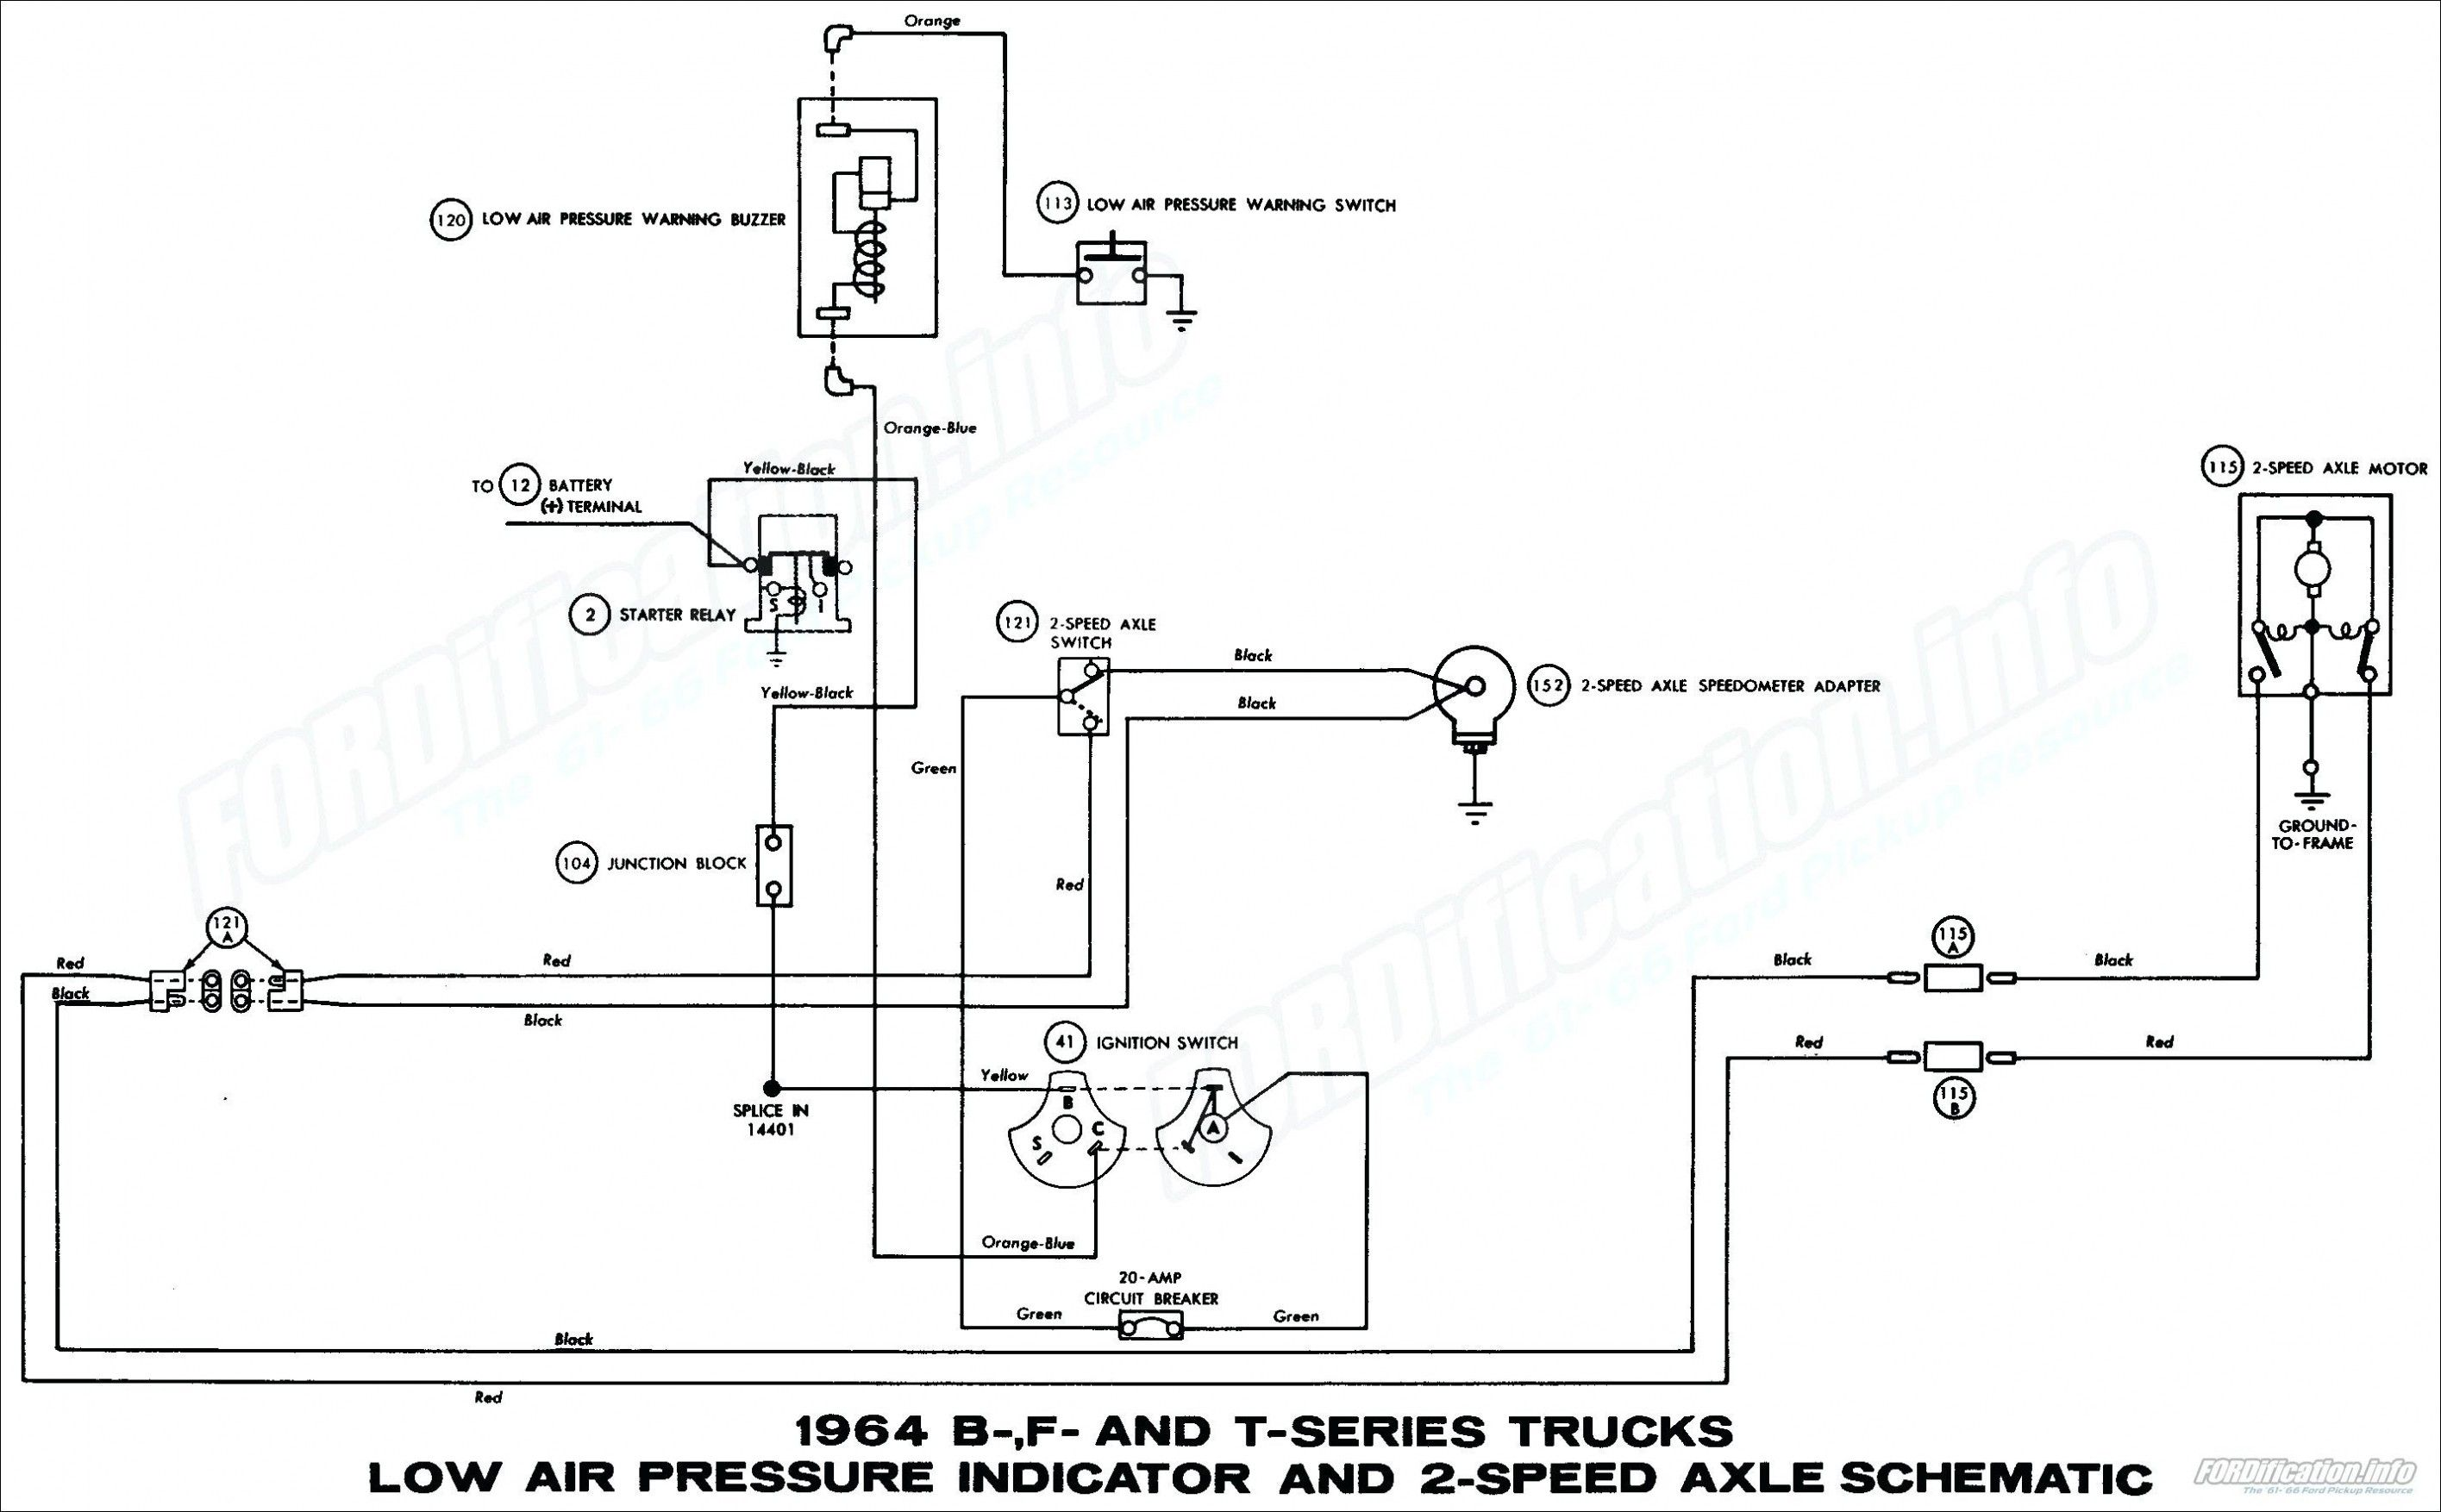 Electric Hydraulic Lift Diagram For Wiring